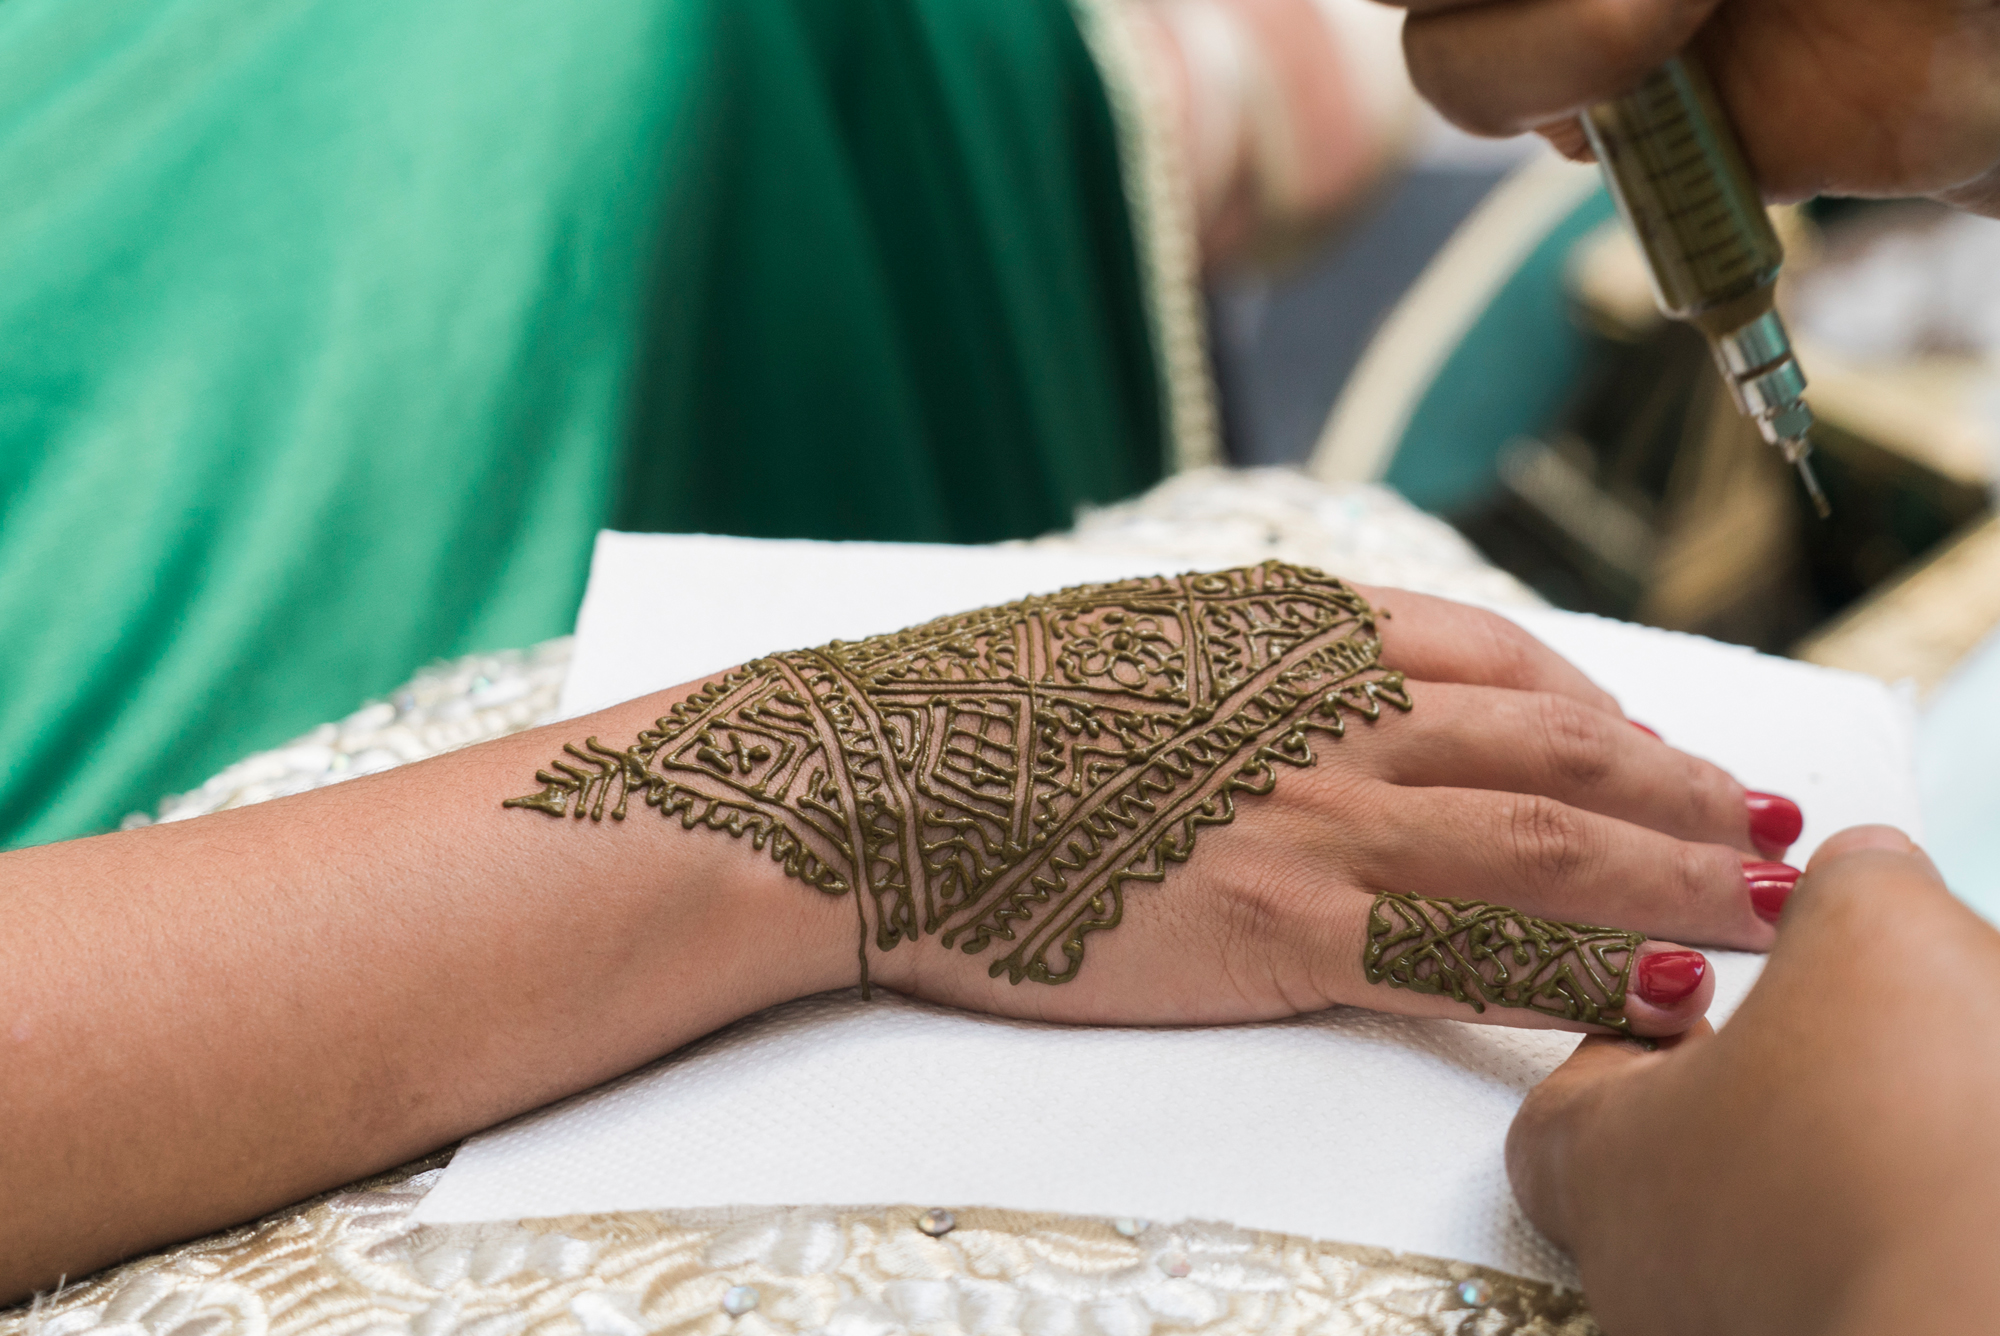 morocco-destination-wedding-henna-ceremony-lilouette-13.jpg